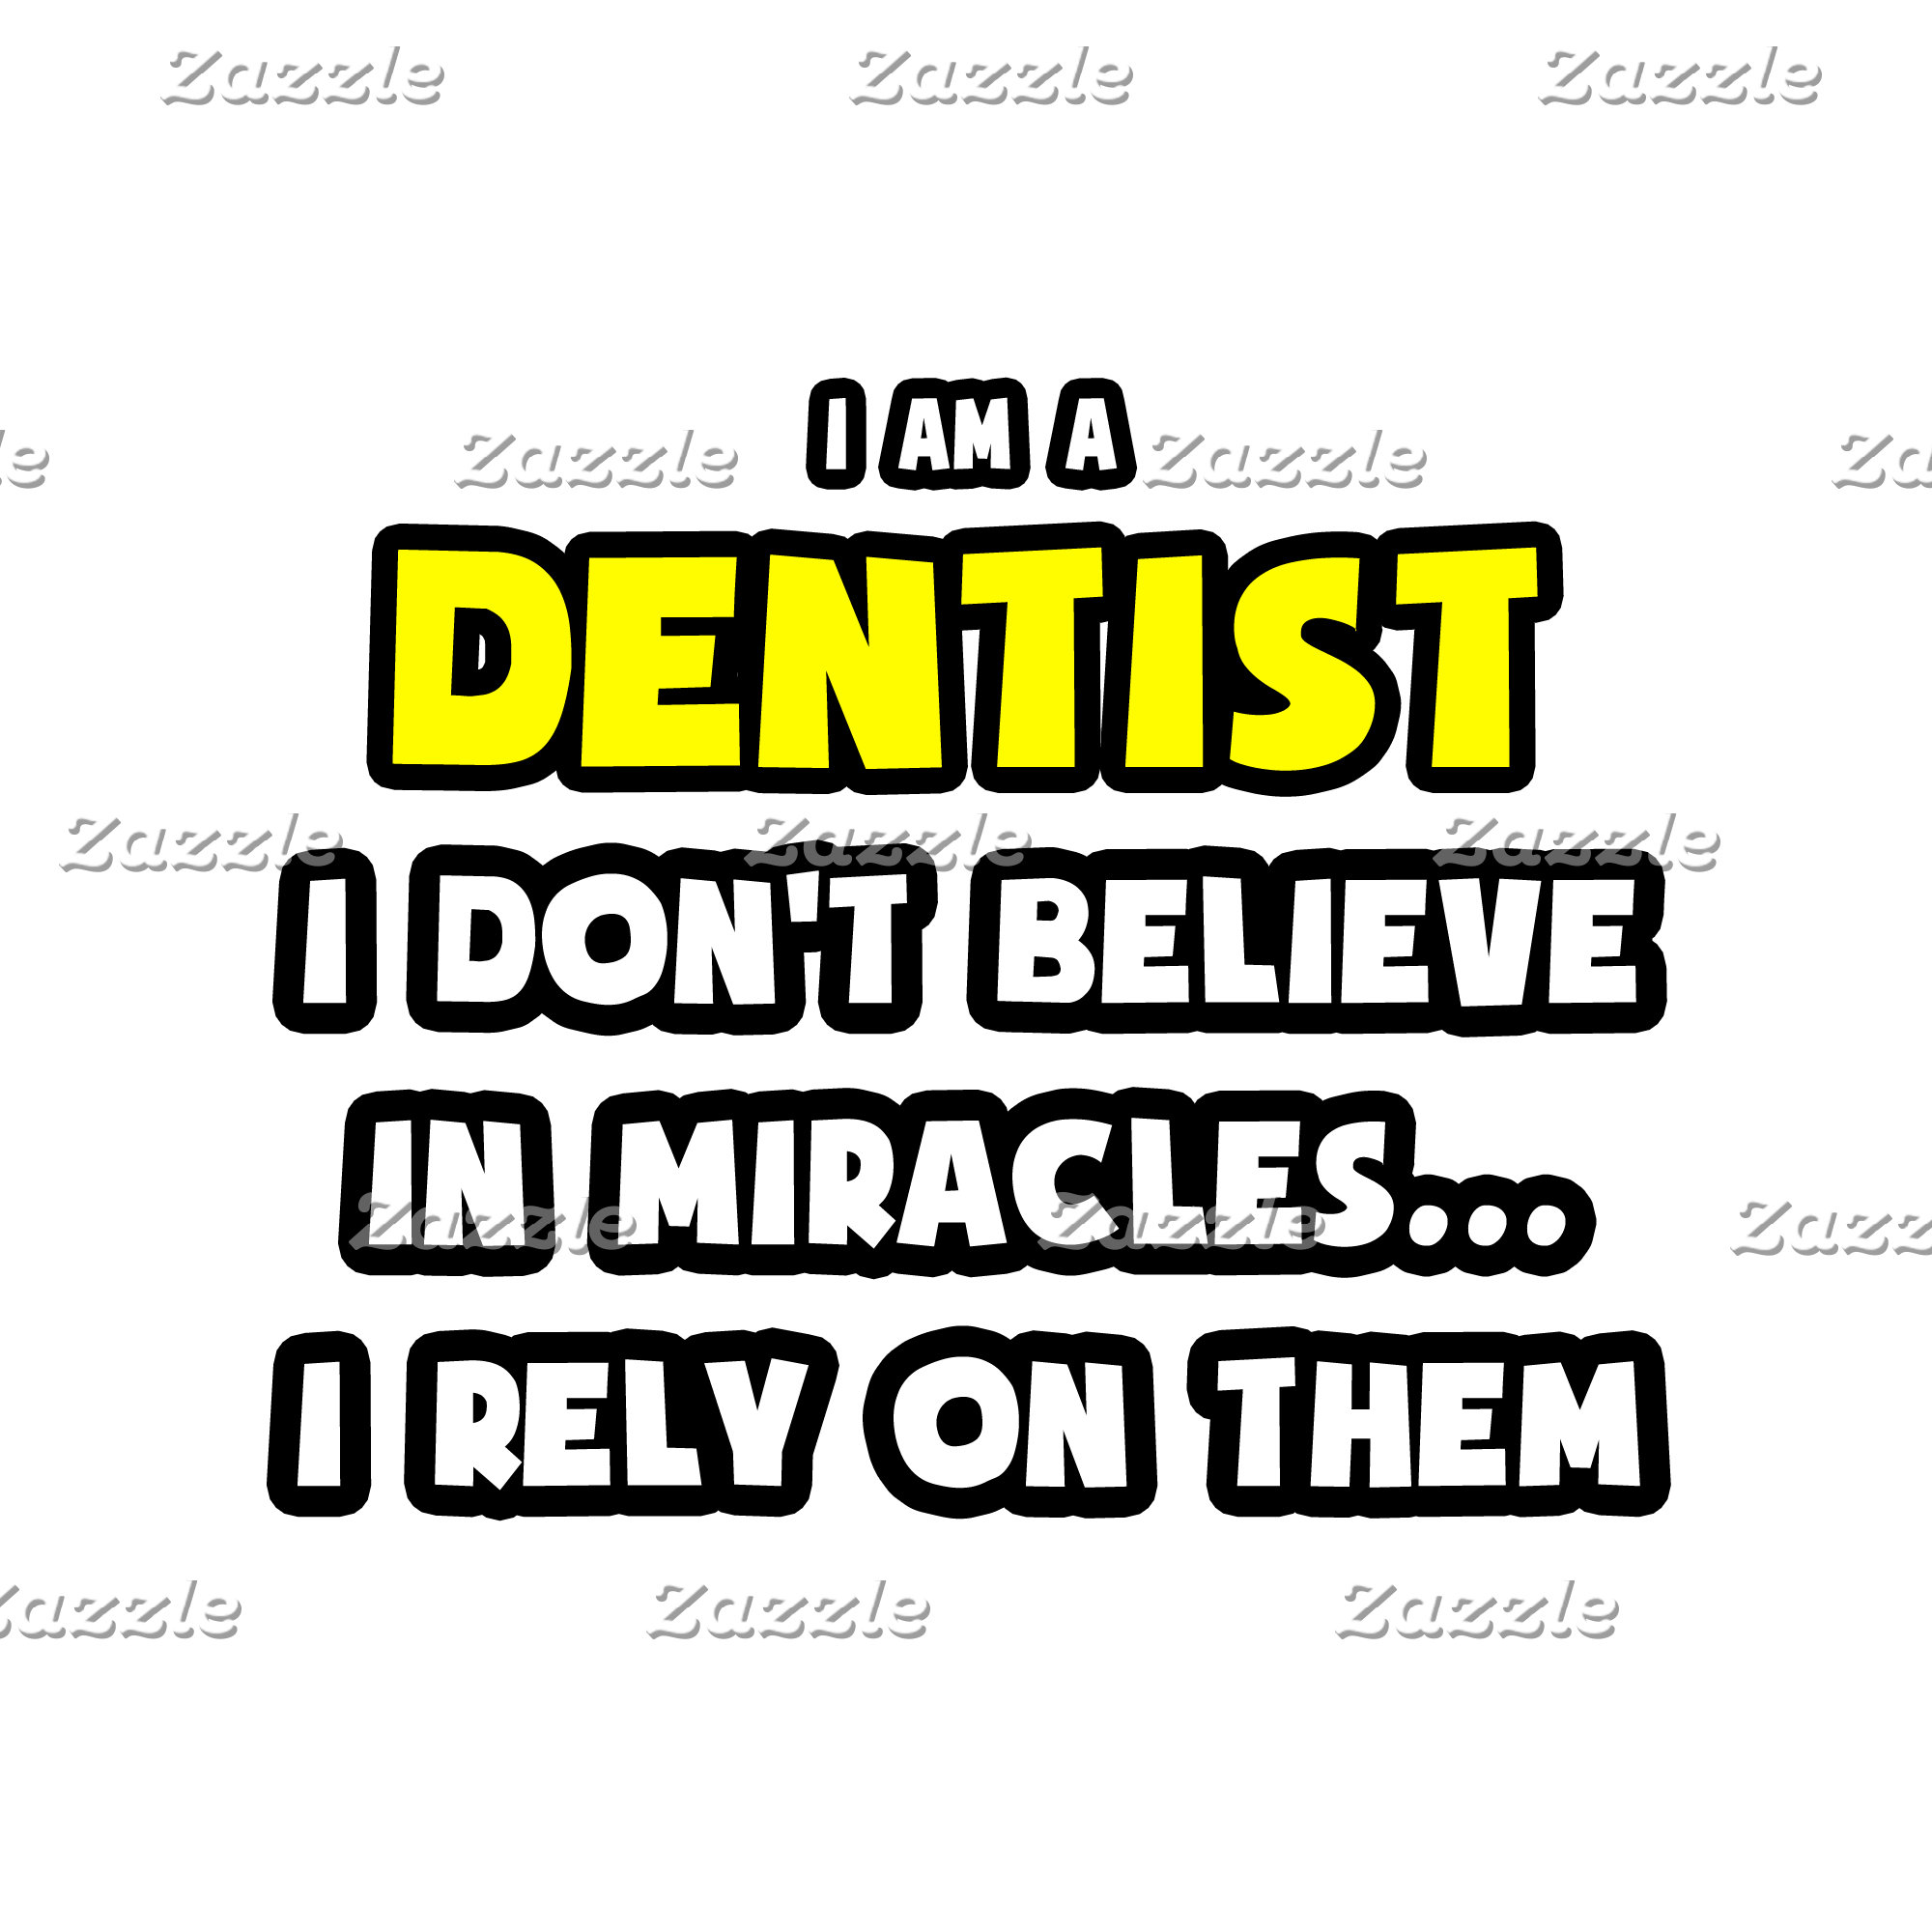 Miracles and Dentists ... Funny